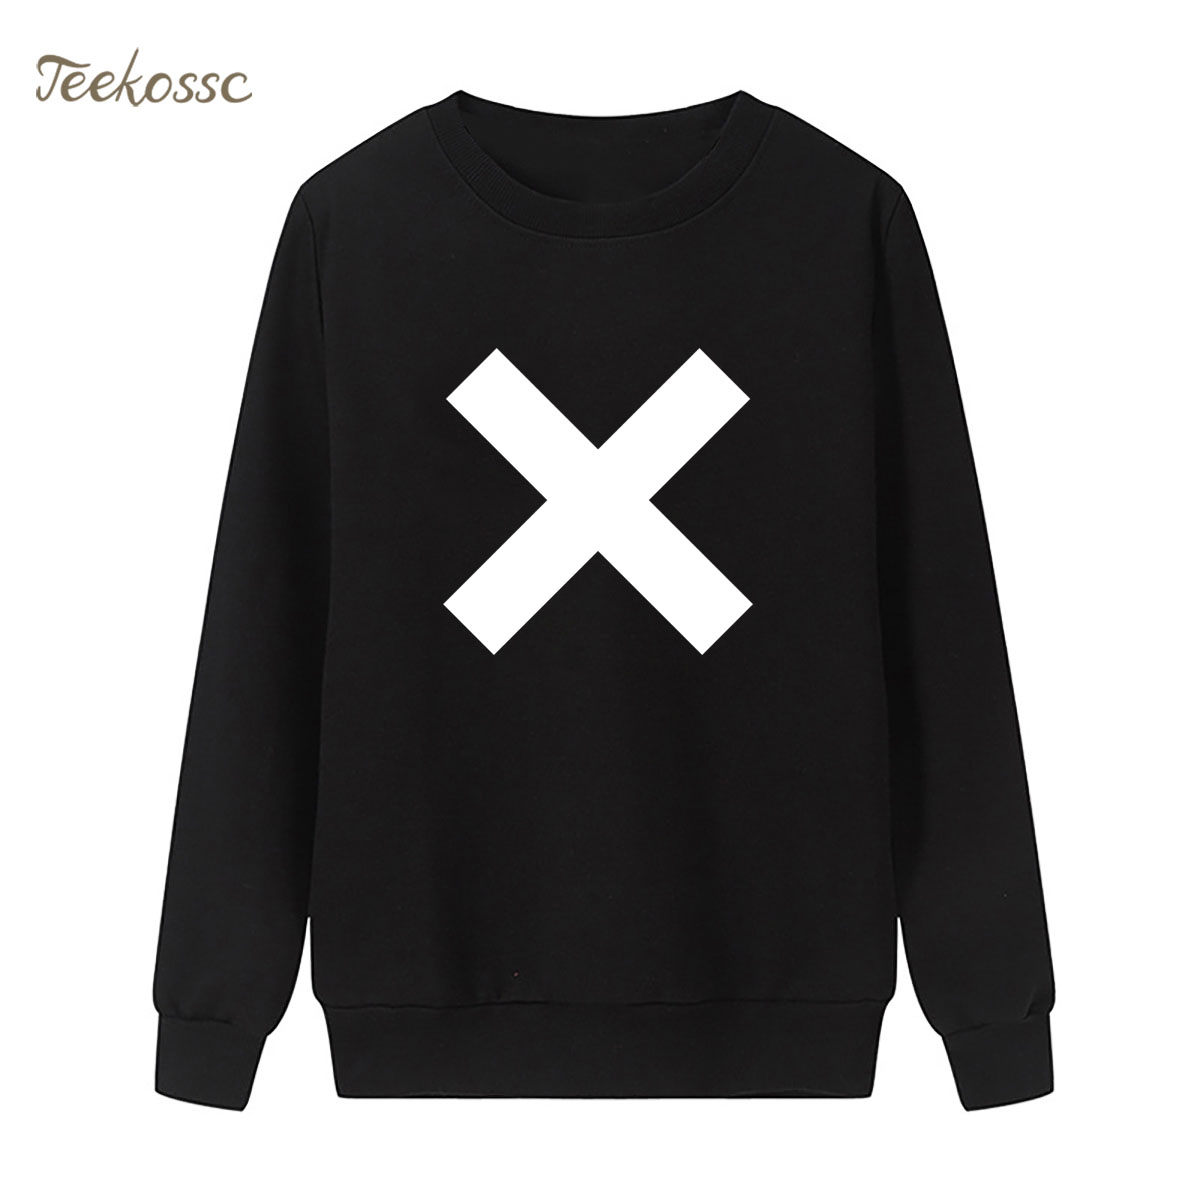 X Letter Sweatshirt Print Hoodie 2018 New Fashion Winter Autumn Women Lasdies Pullover Loose Fleece Casual Brand Clothing XXL